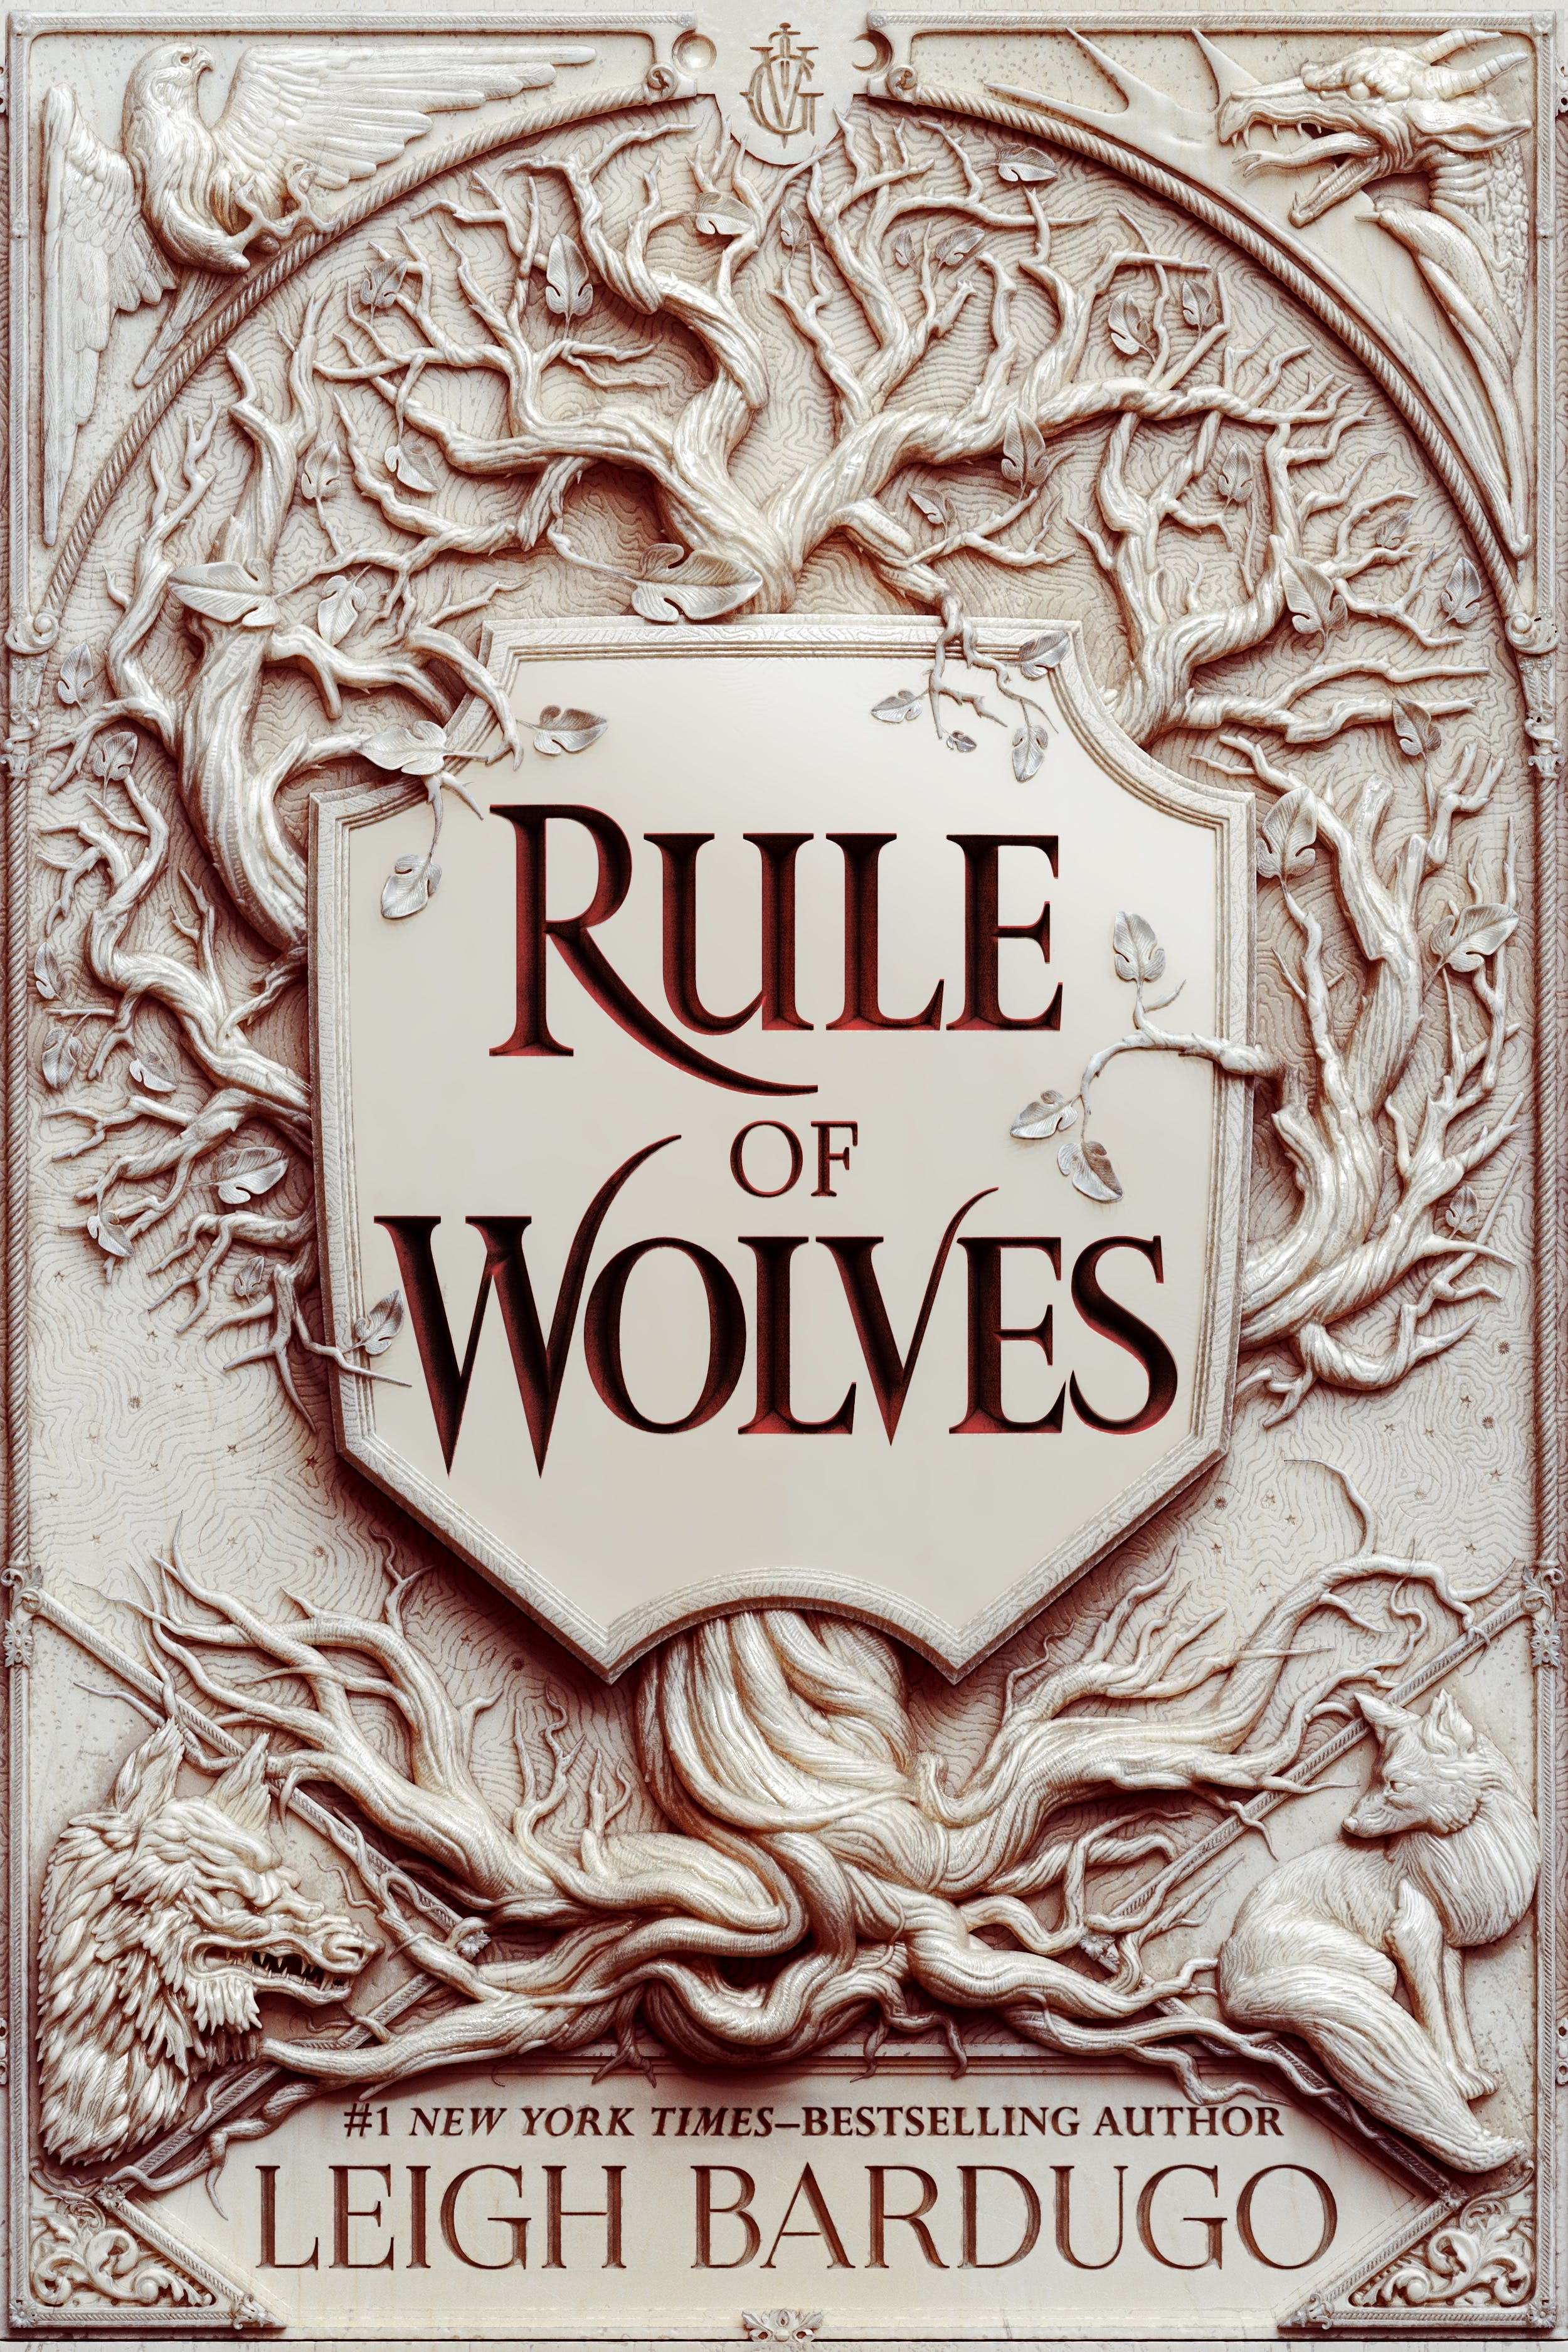 Image of Rule of Wolves